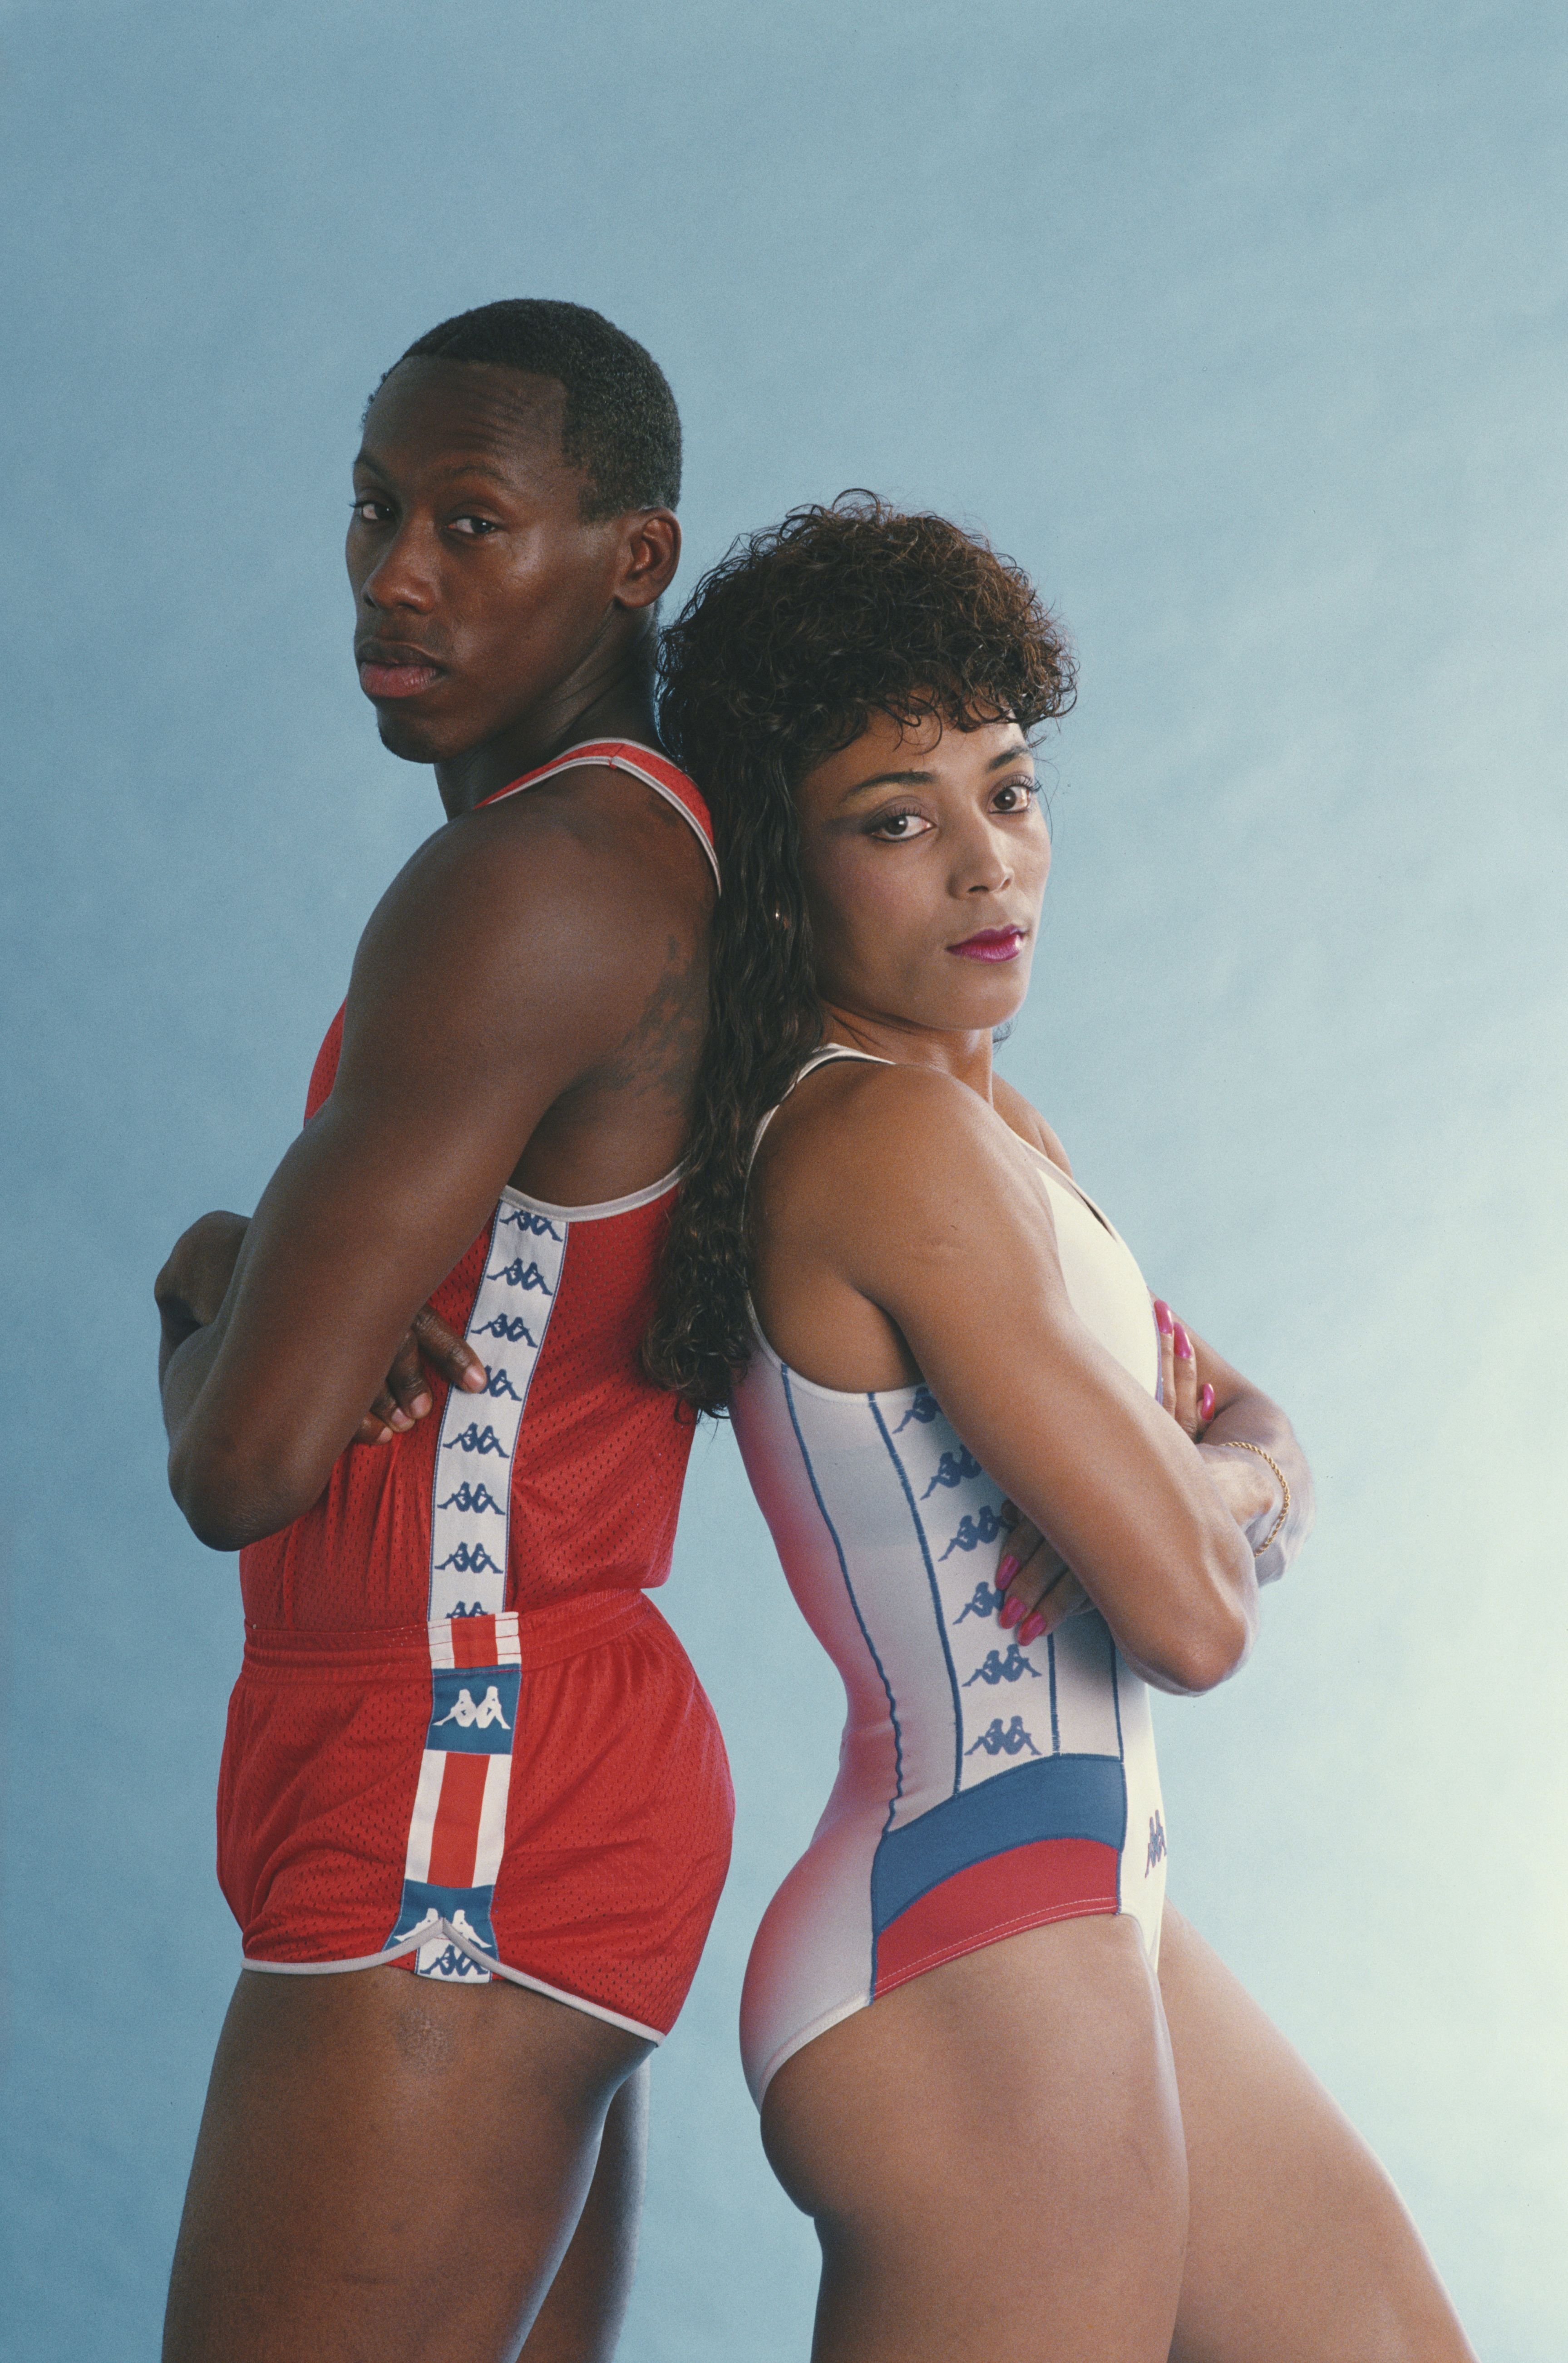 Florence Joyner poses for a portrait with Al Joyner in Los Angeles on April 5, 1988. | Photo: Getty Images